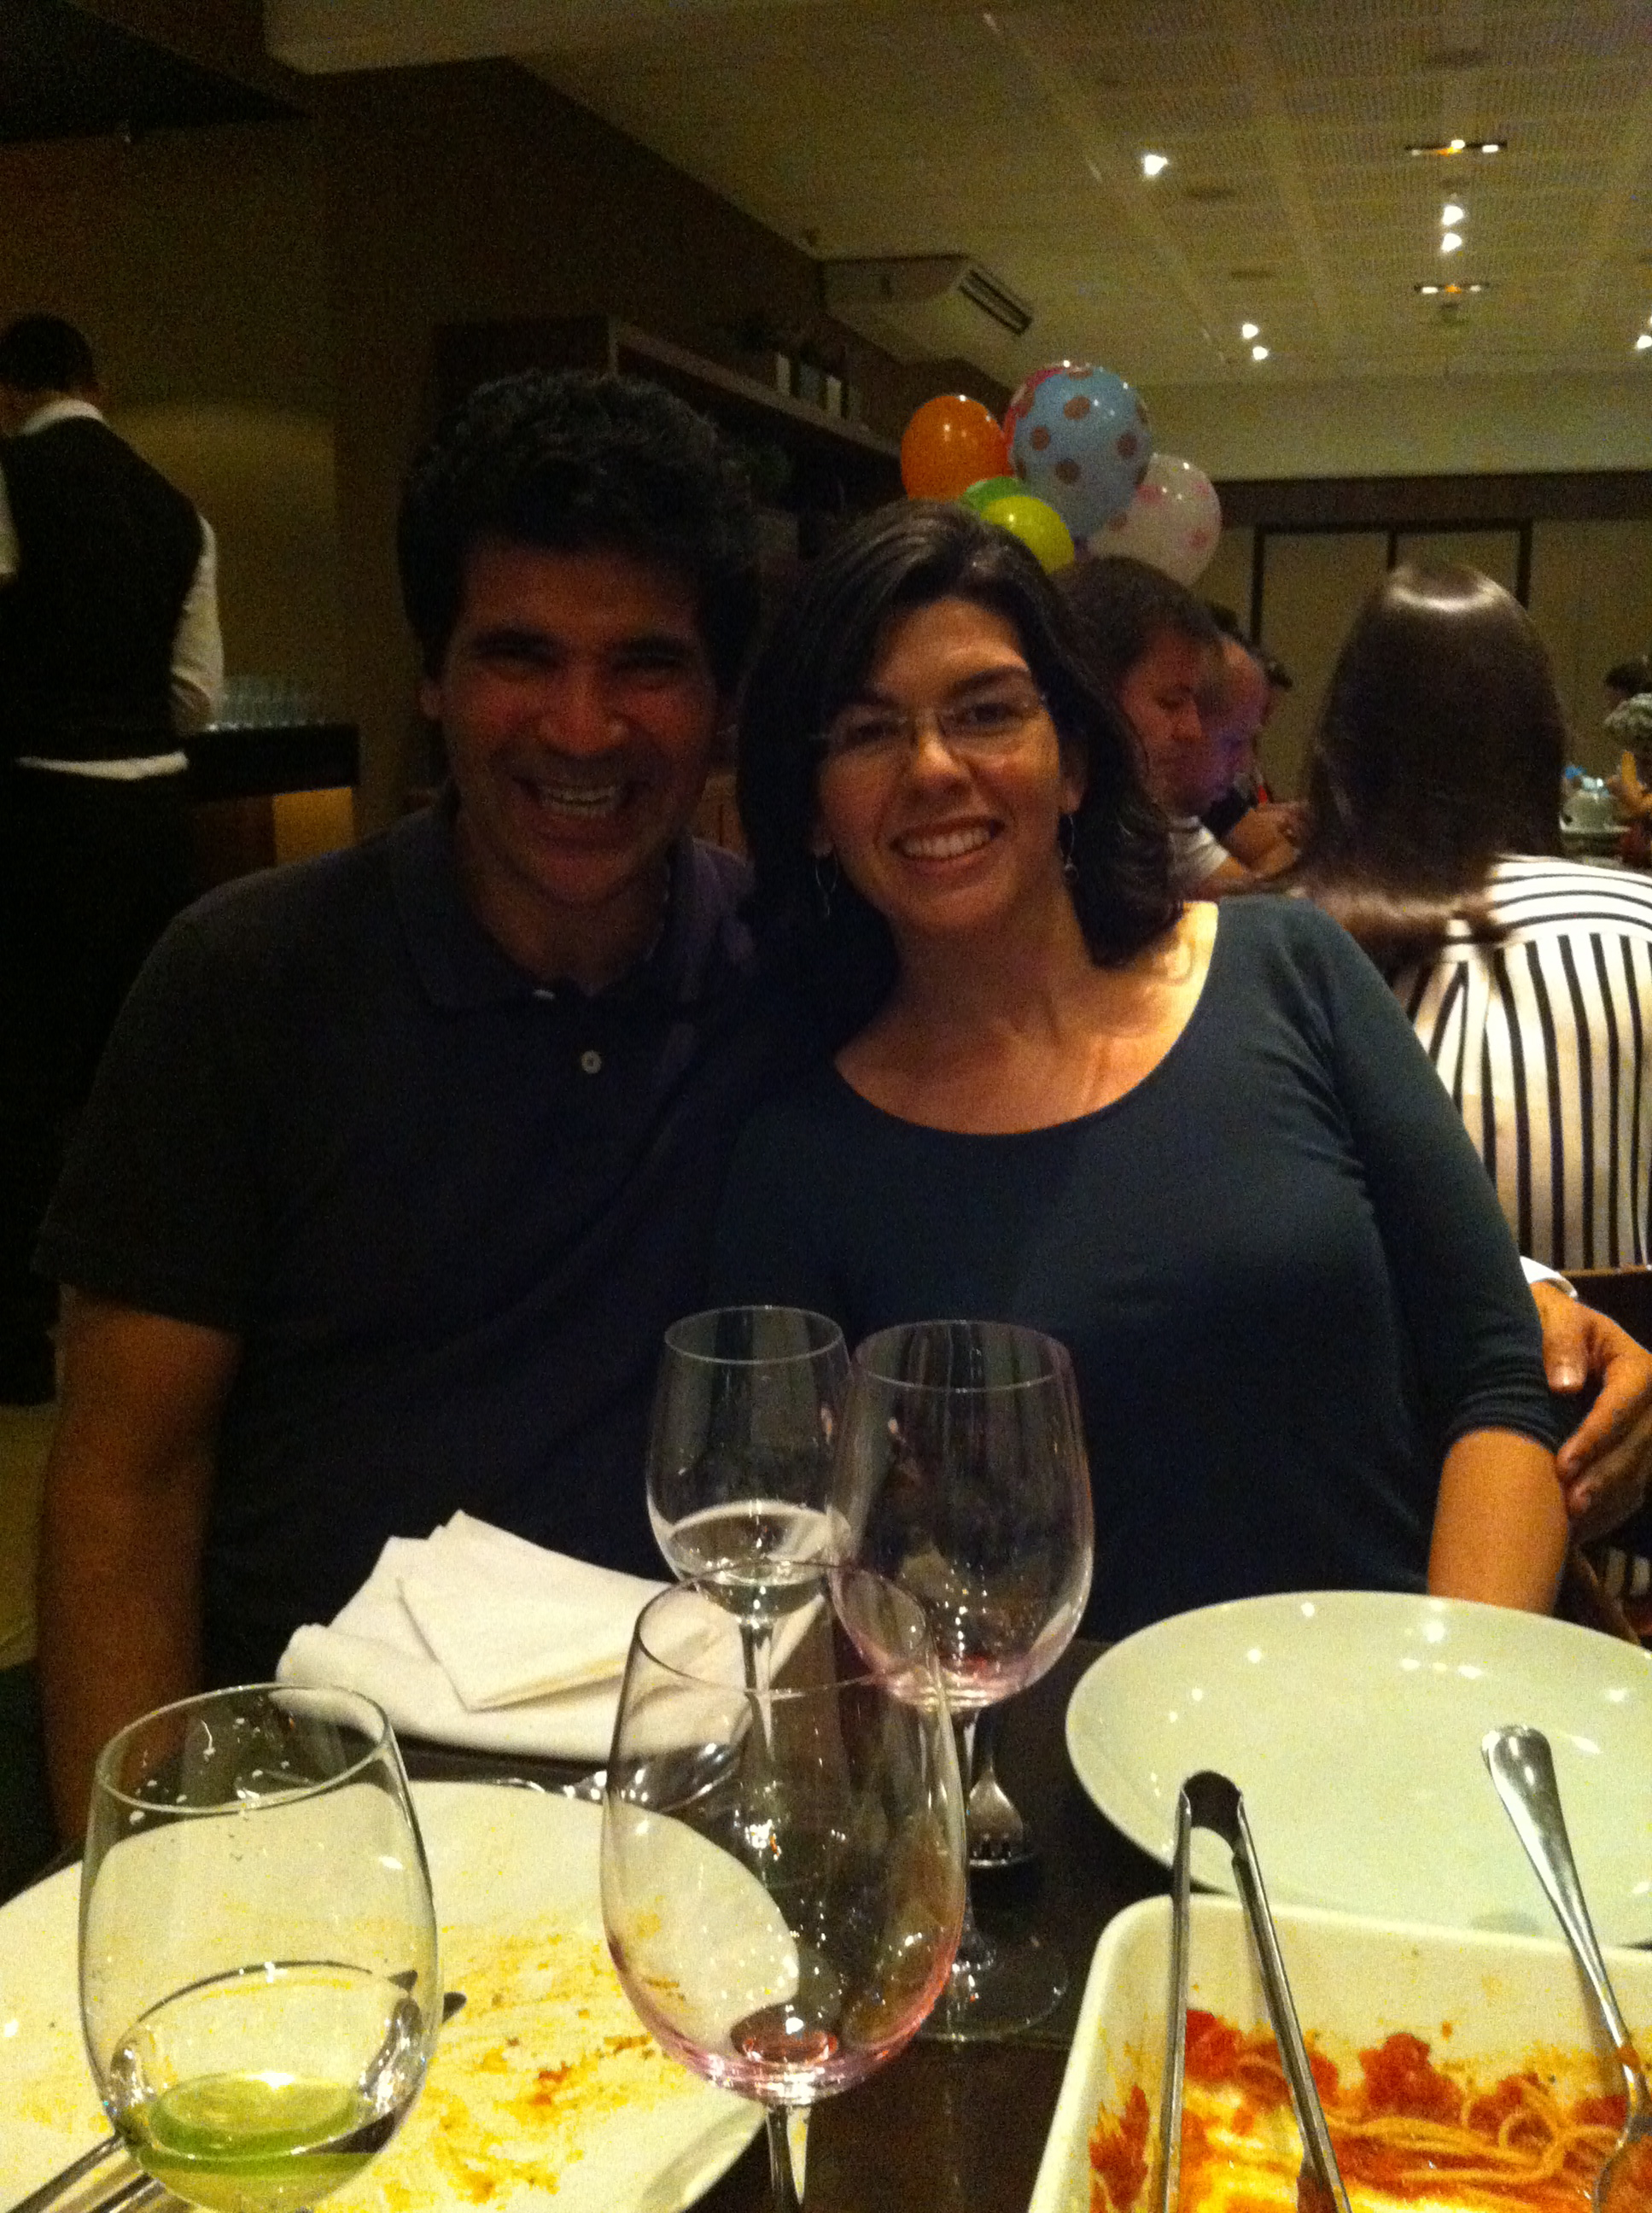 Ricardo and his wife